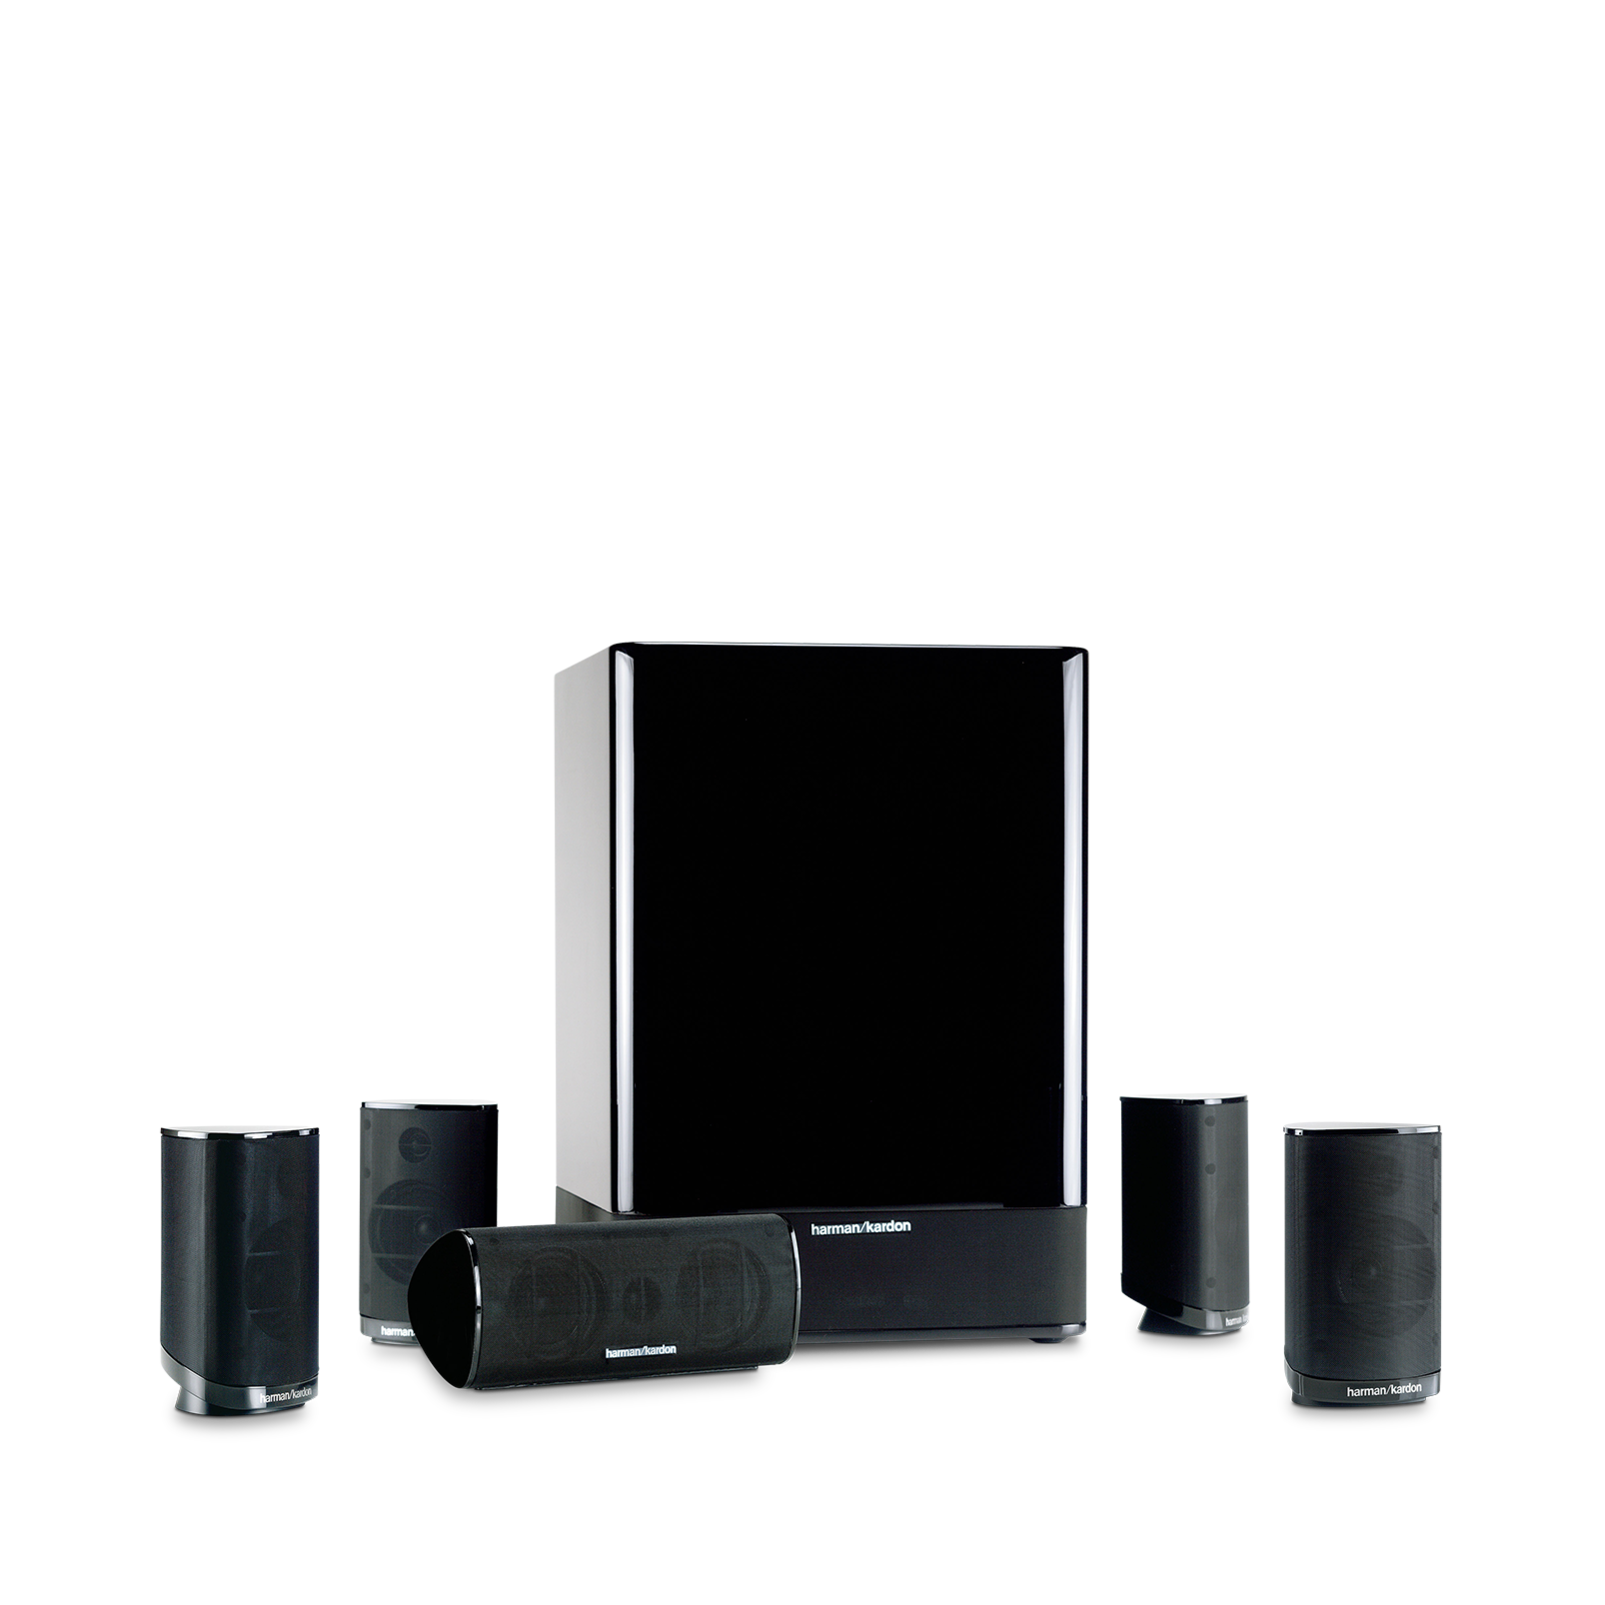 Hkts 15 Home Theater Speaker System Home Theater Speakers Home